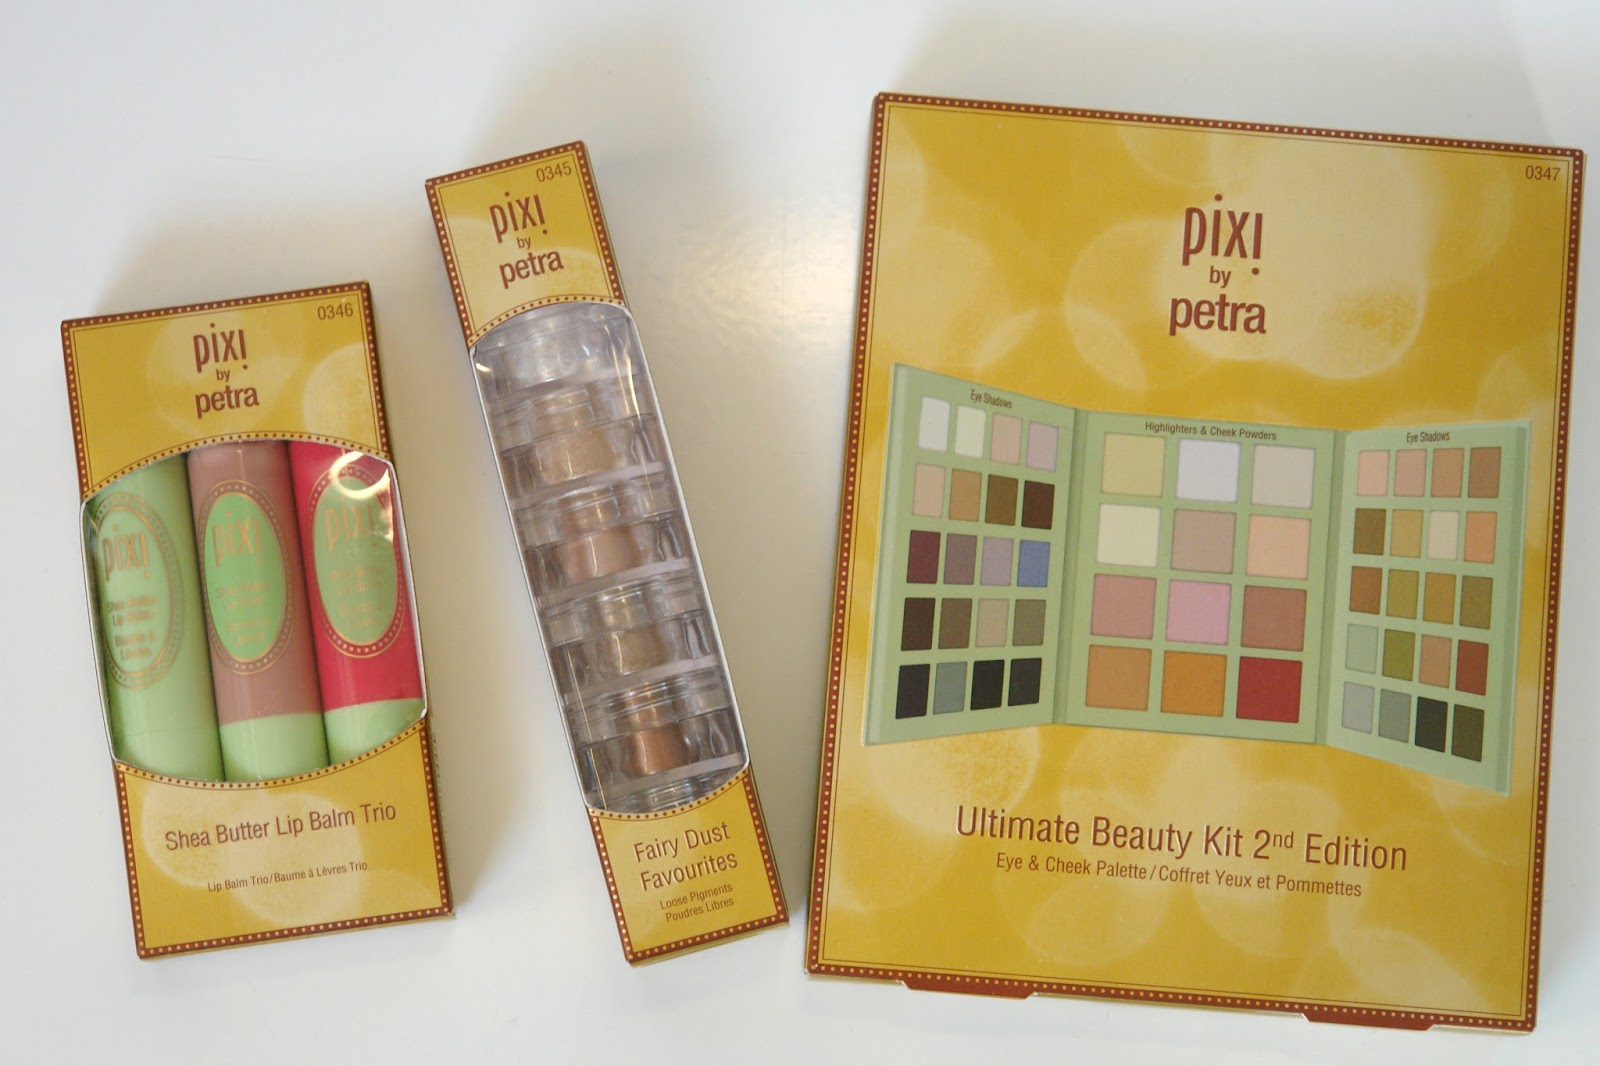 PIXI Christmas collection, beauty, blusher, eye shadows, highlighter, lip balm, make up, palette, PIXI, review, beauty blogger, UK blog, PIXI Ultimate Beauty Kit 2nd Edition, PIXI Fairy Dust Favourites - Light Catchers, PIXI Shea Butter Lip Balm Trio